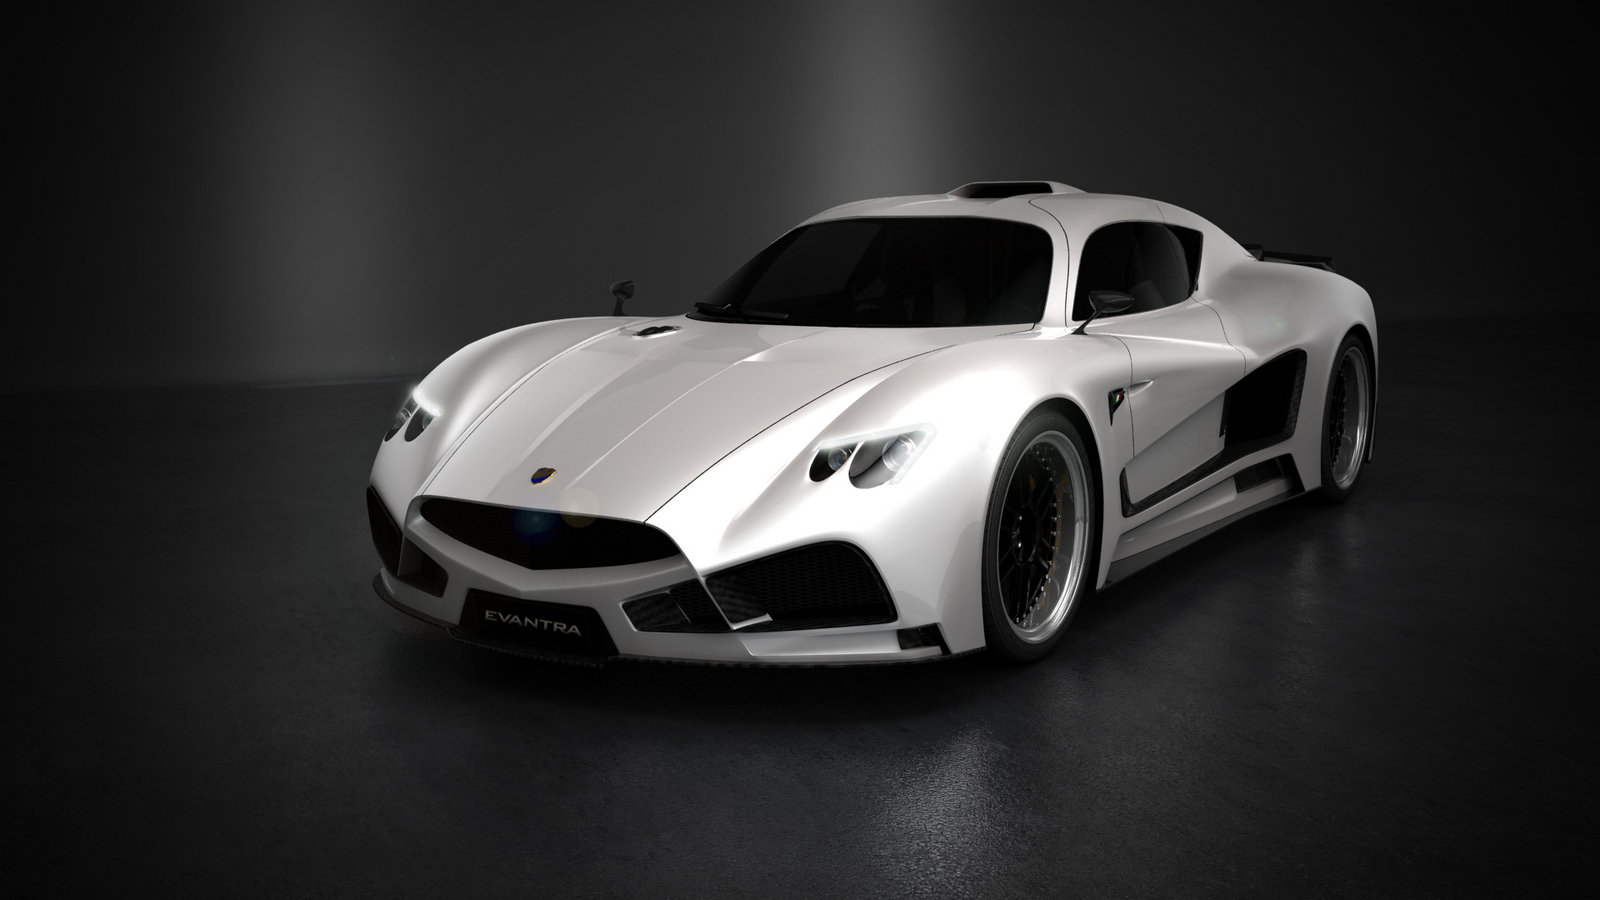 Car New Wallpaper 2013 2013 Mazzanti Evantra V8 Review Top Speed